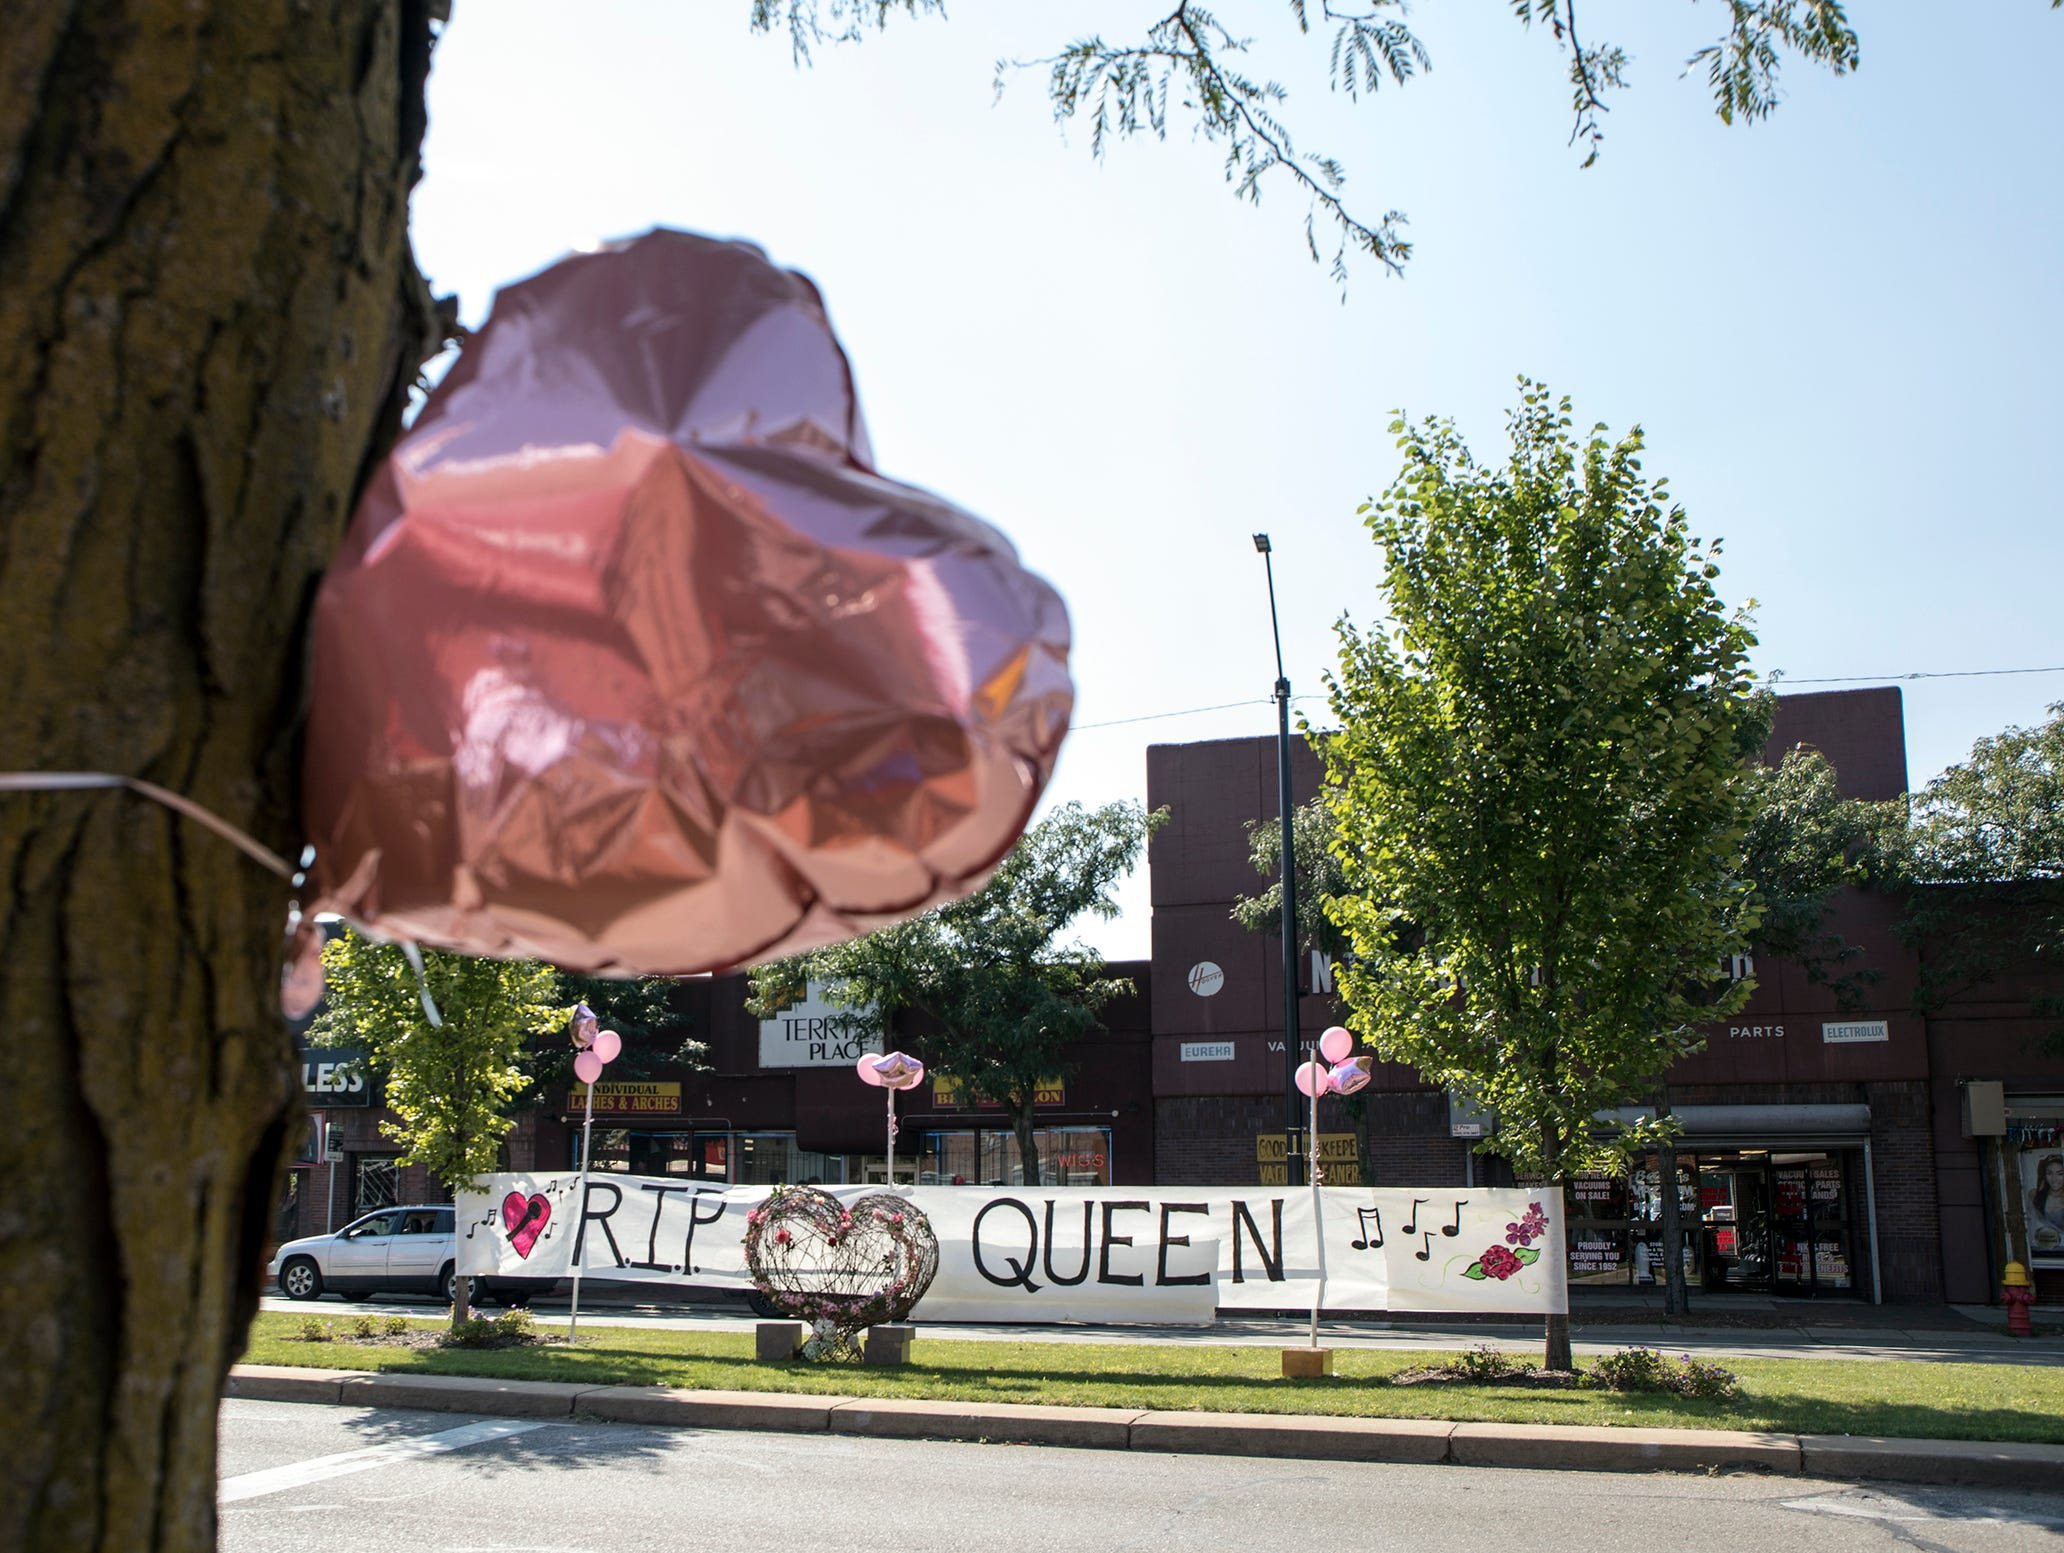 Merchants decorate their storefronts in anticipation of Aretha Franklin's funeral to pass by on Livernois Ave. in Detroit on Friday, August 31, 2018.